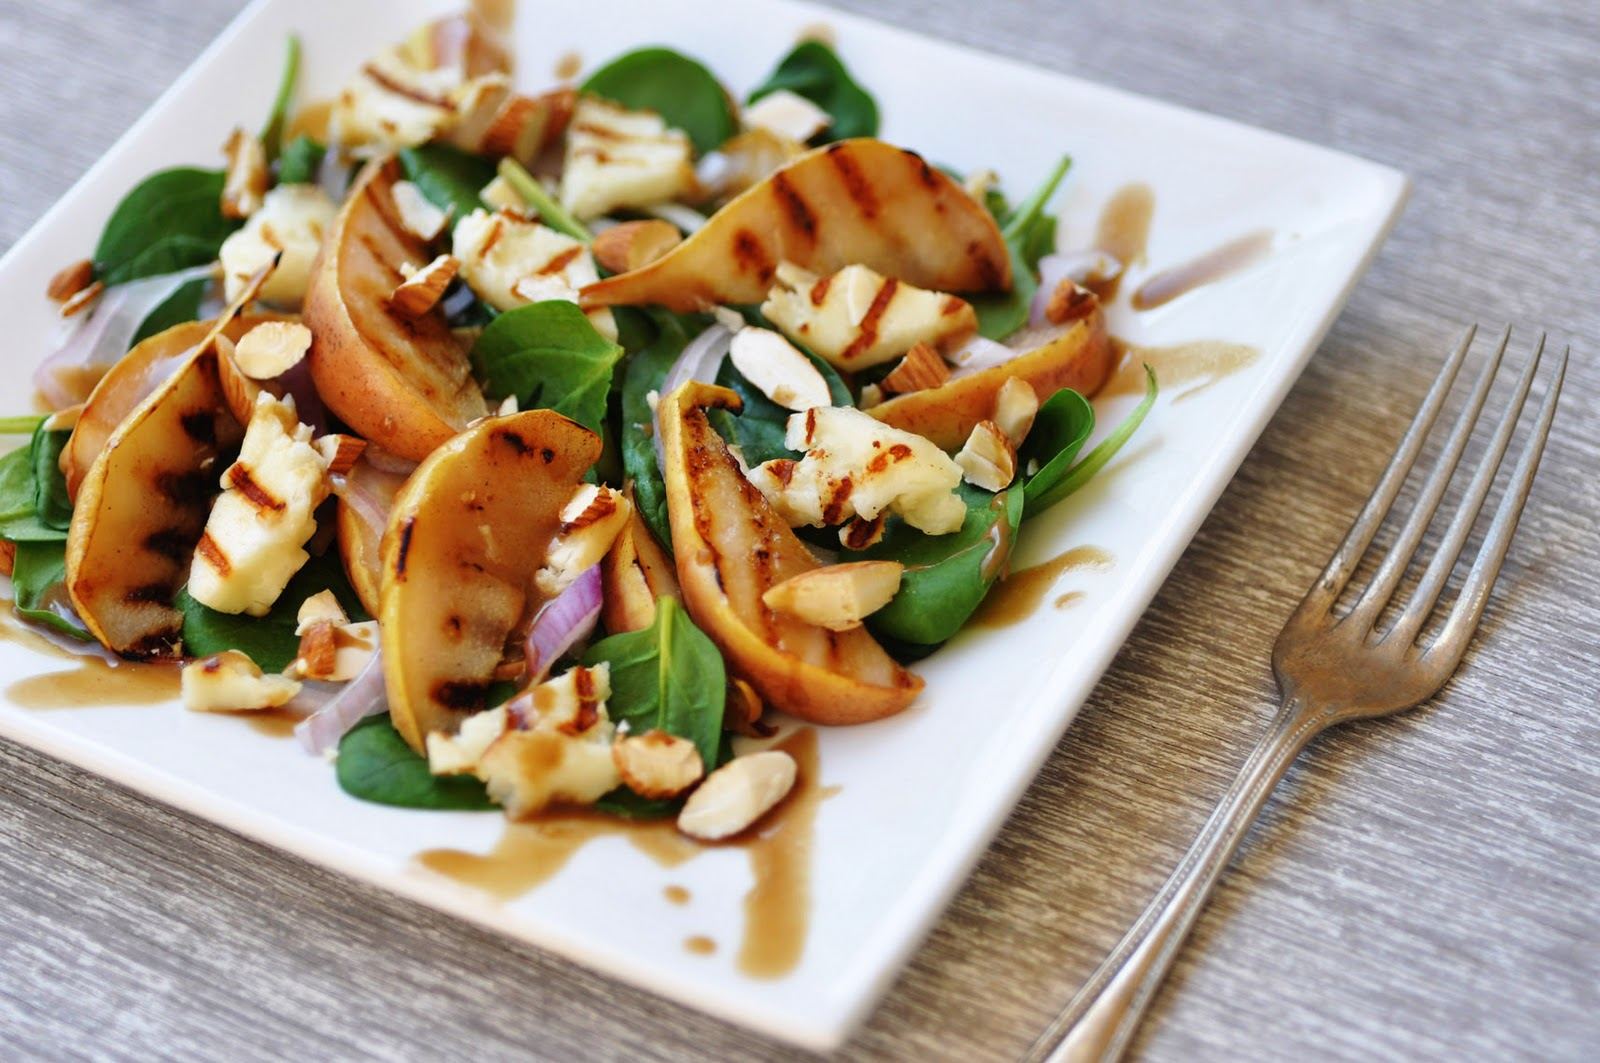 ... salads and to add a fresh, crispy and tasty accent to pastas and